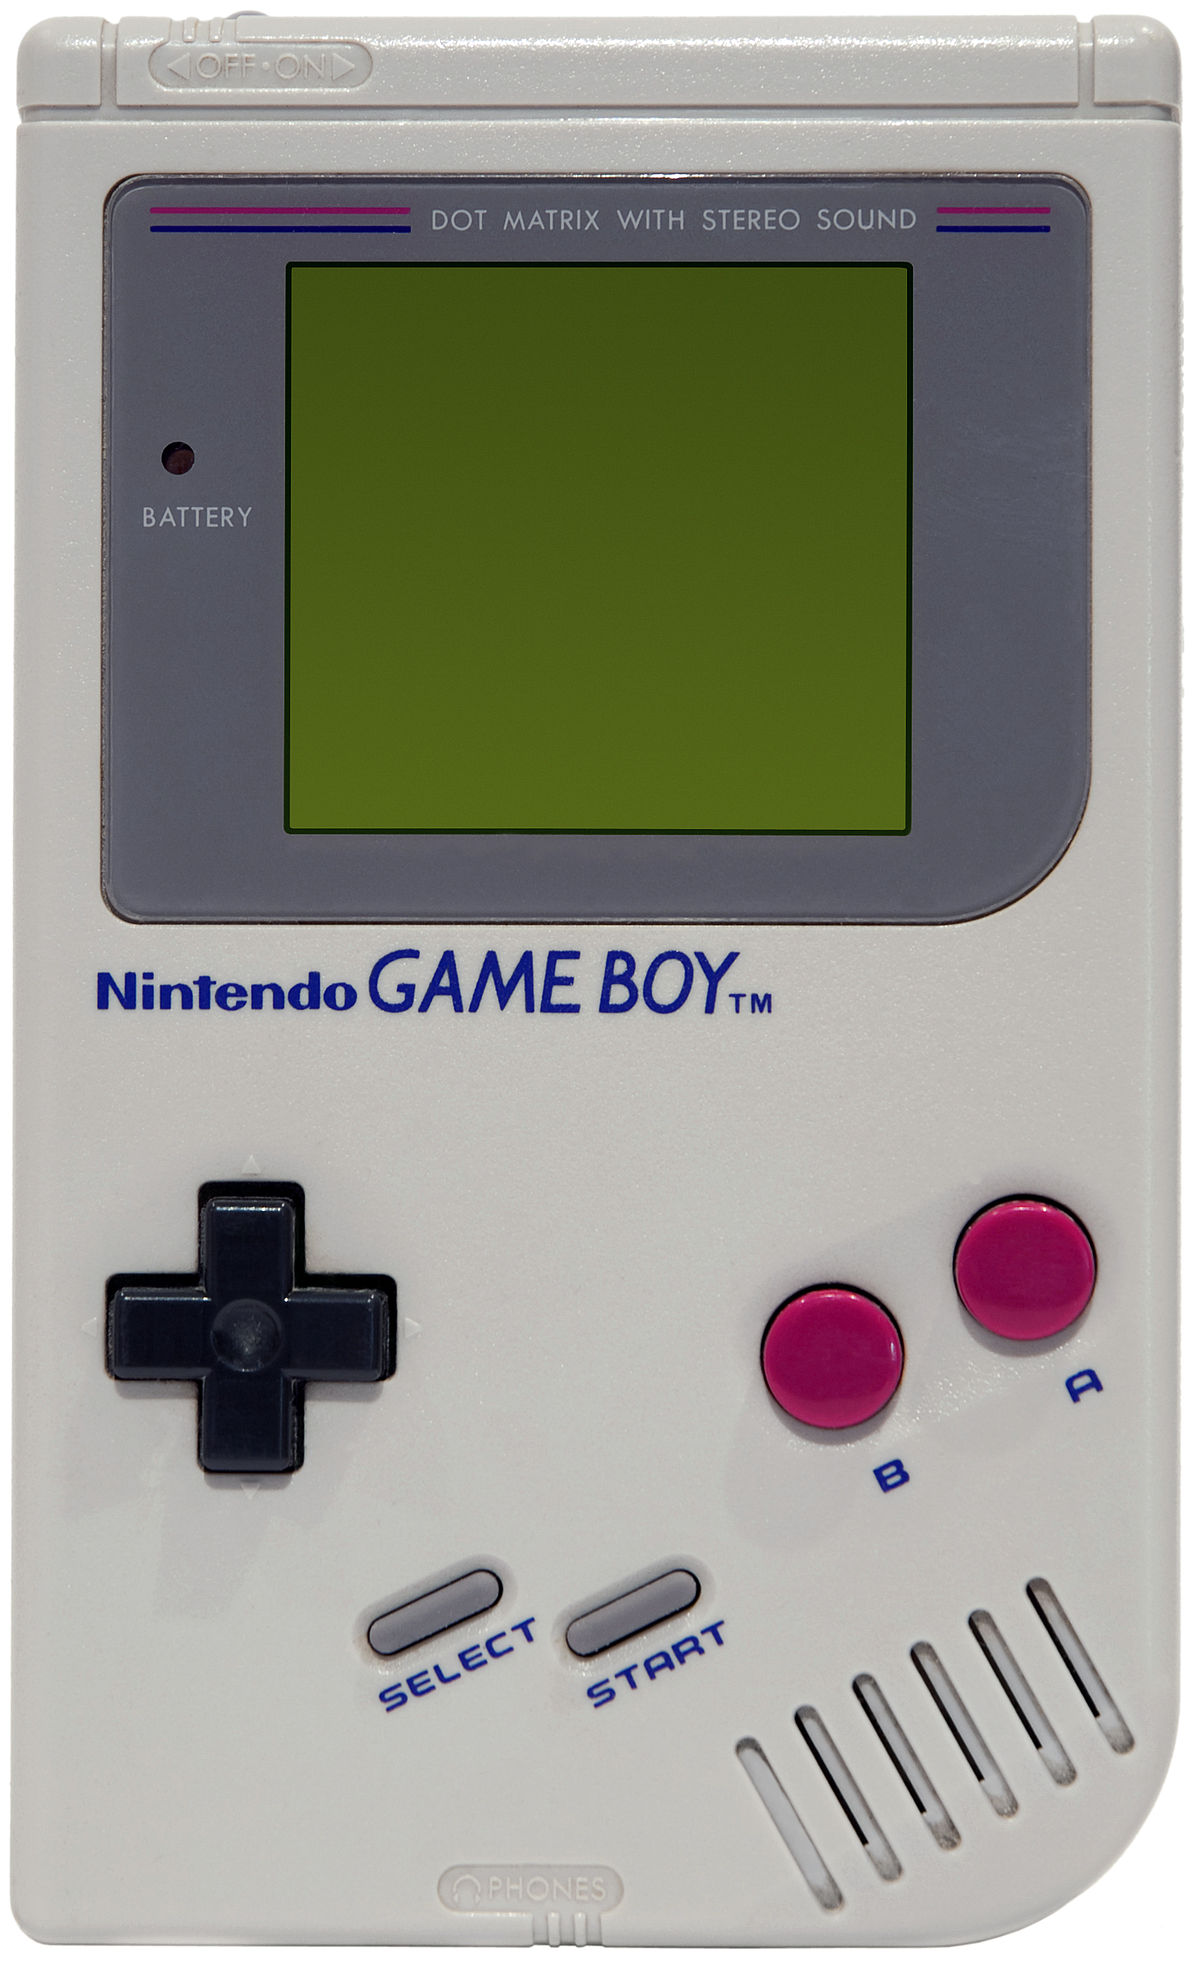 Back in my day, young whippersnappers, the gaming screens were black and green!